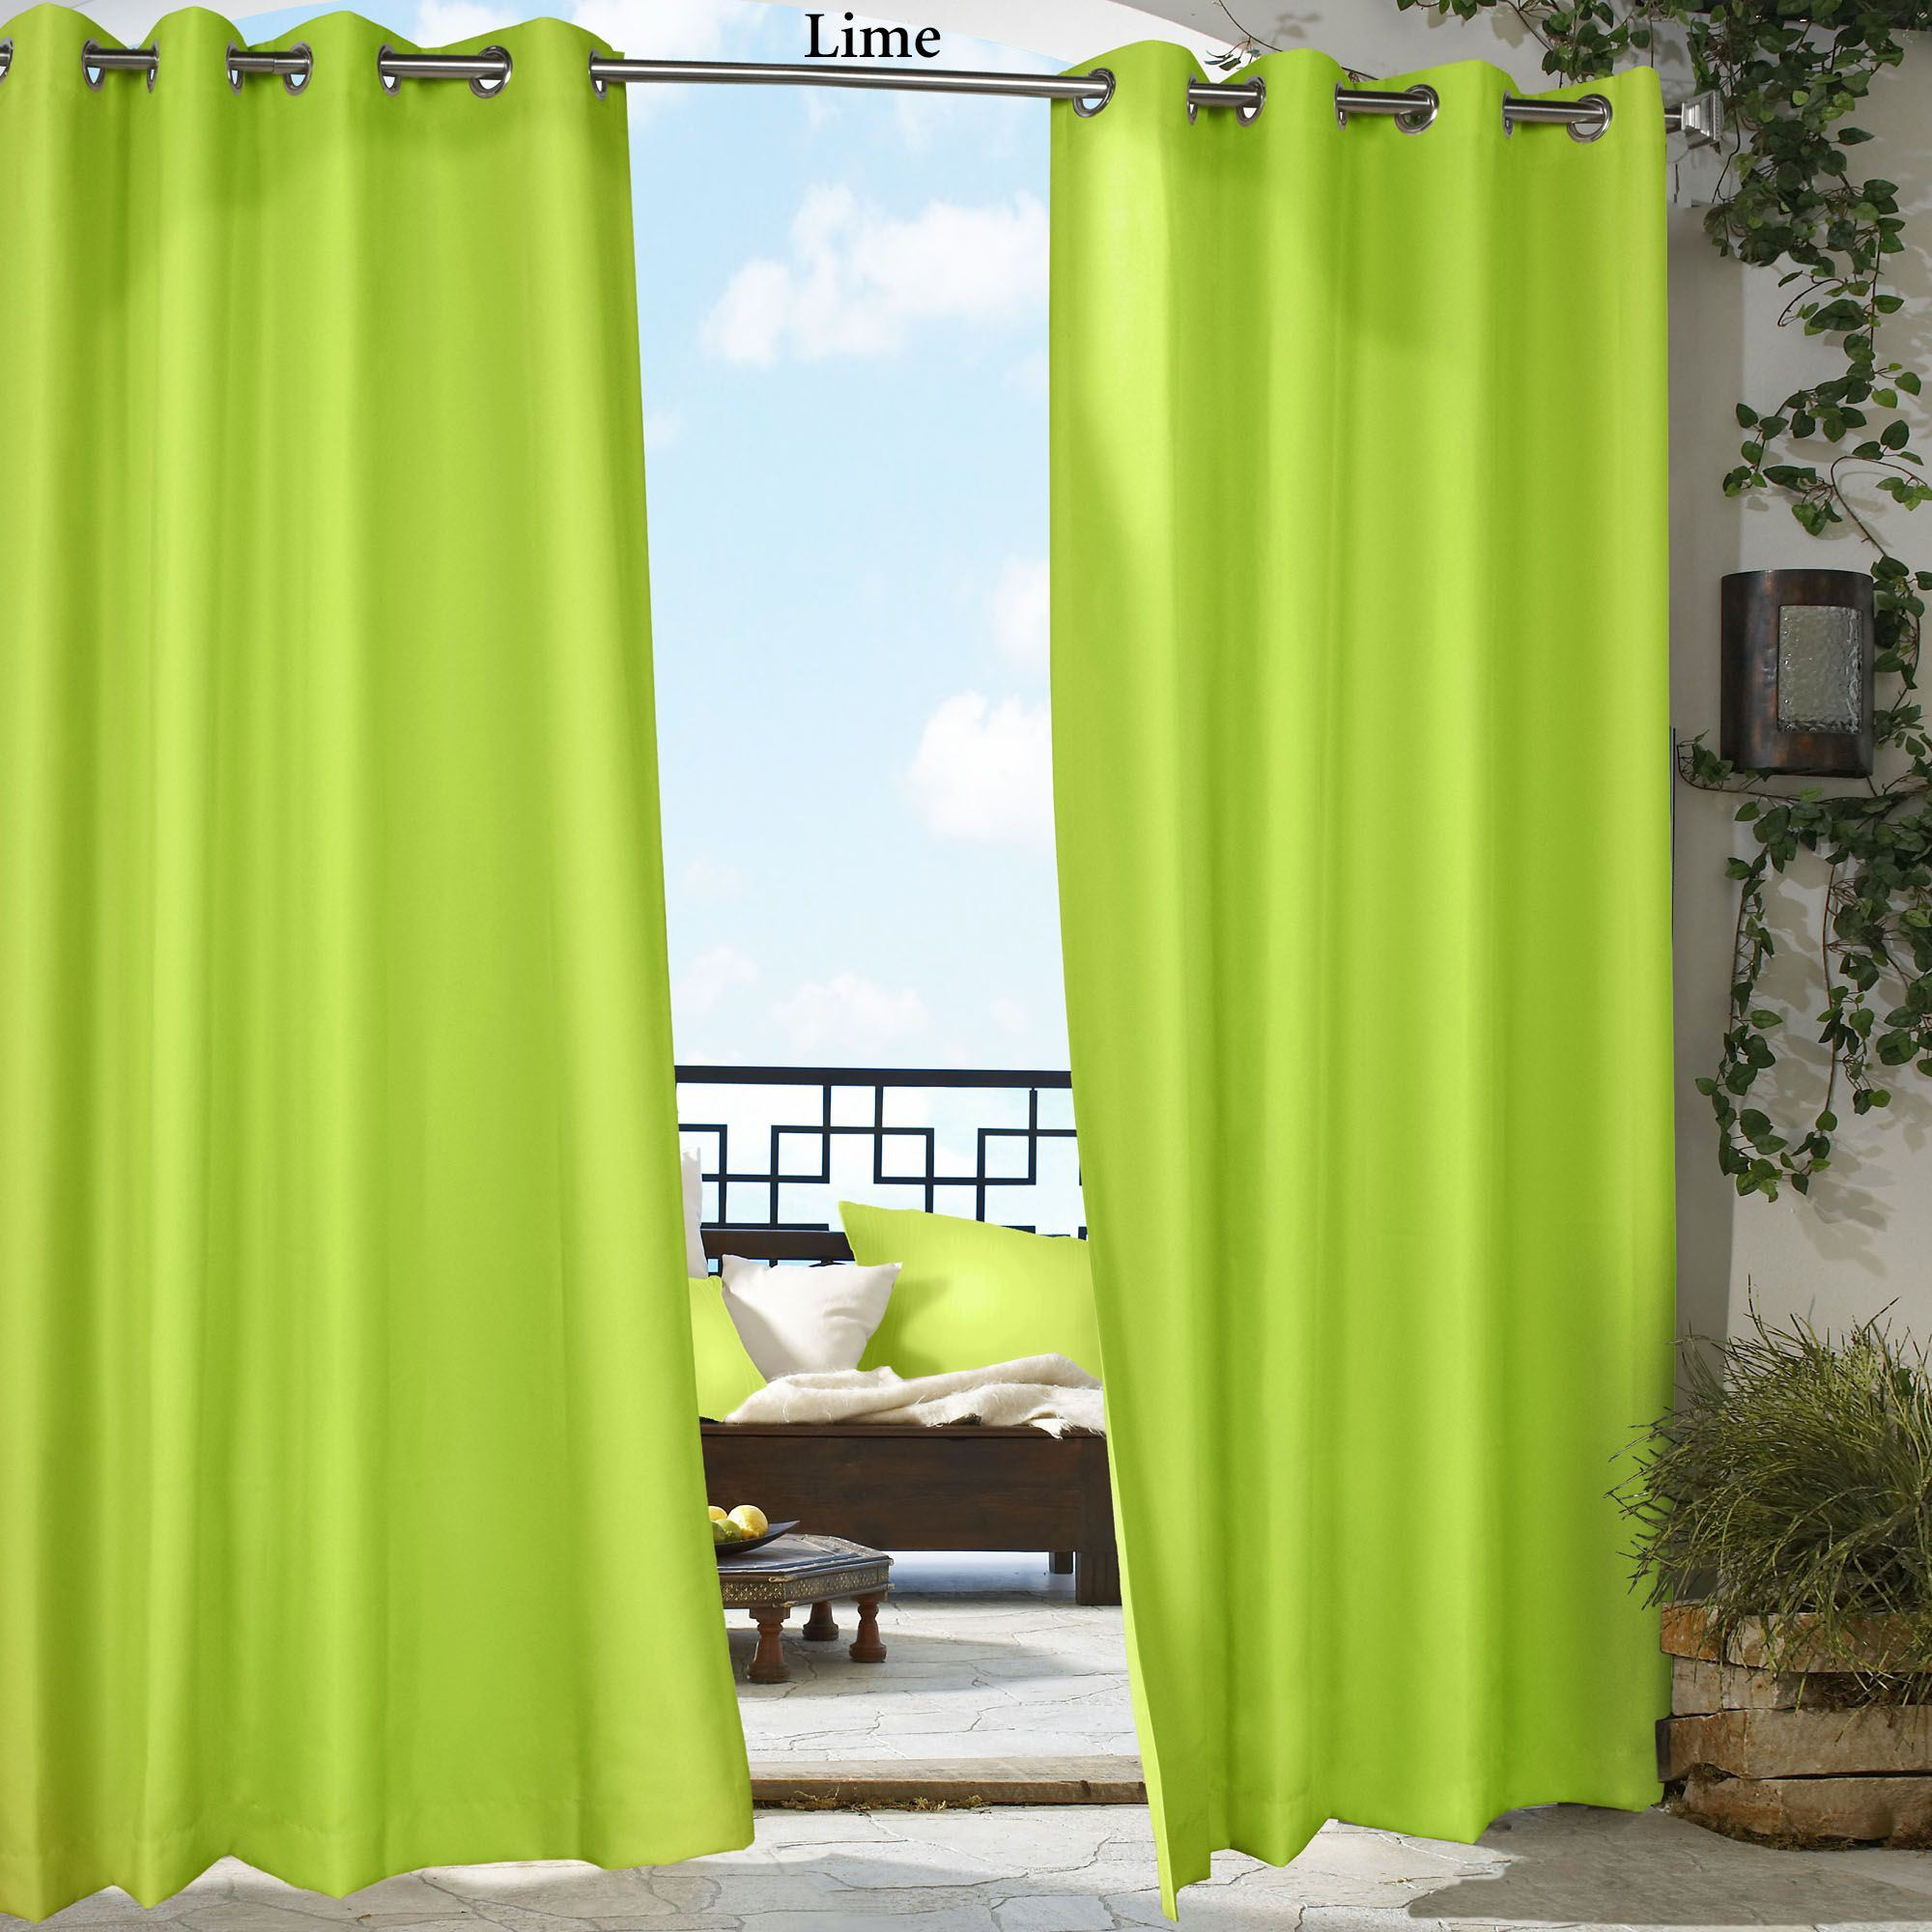 yellow room awning drapes for and living deck studentsserve long blue striped black curtain outdoor ideas white inch lowes sheer sunbrella panels privacy curtains extra